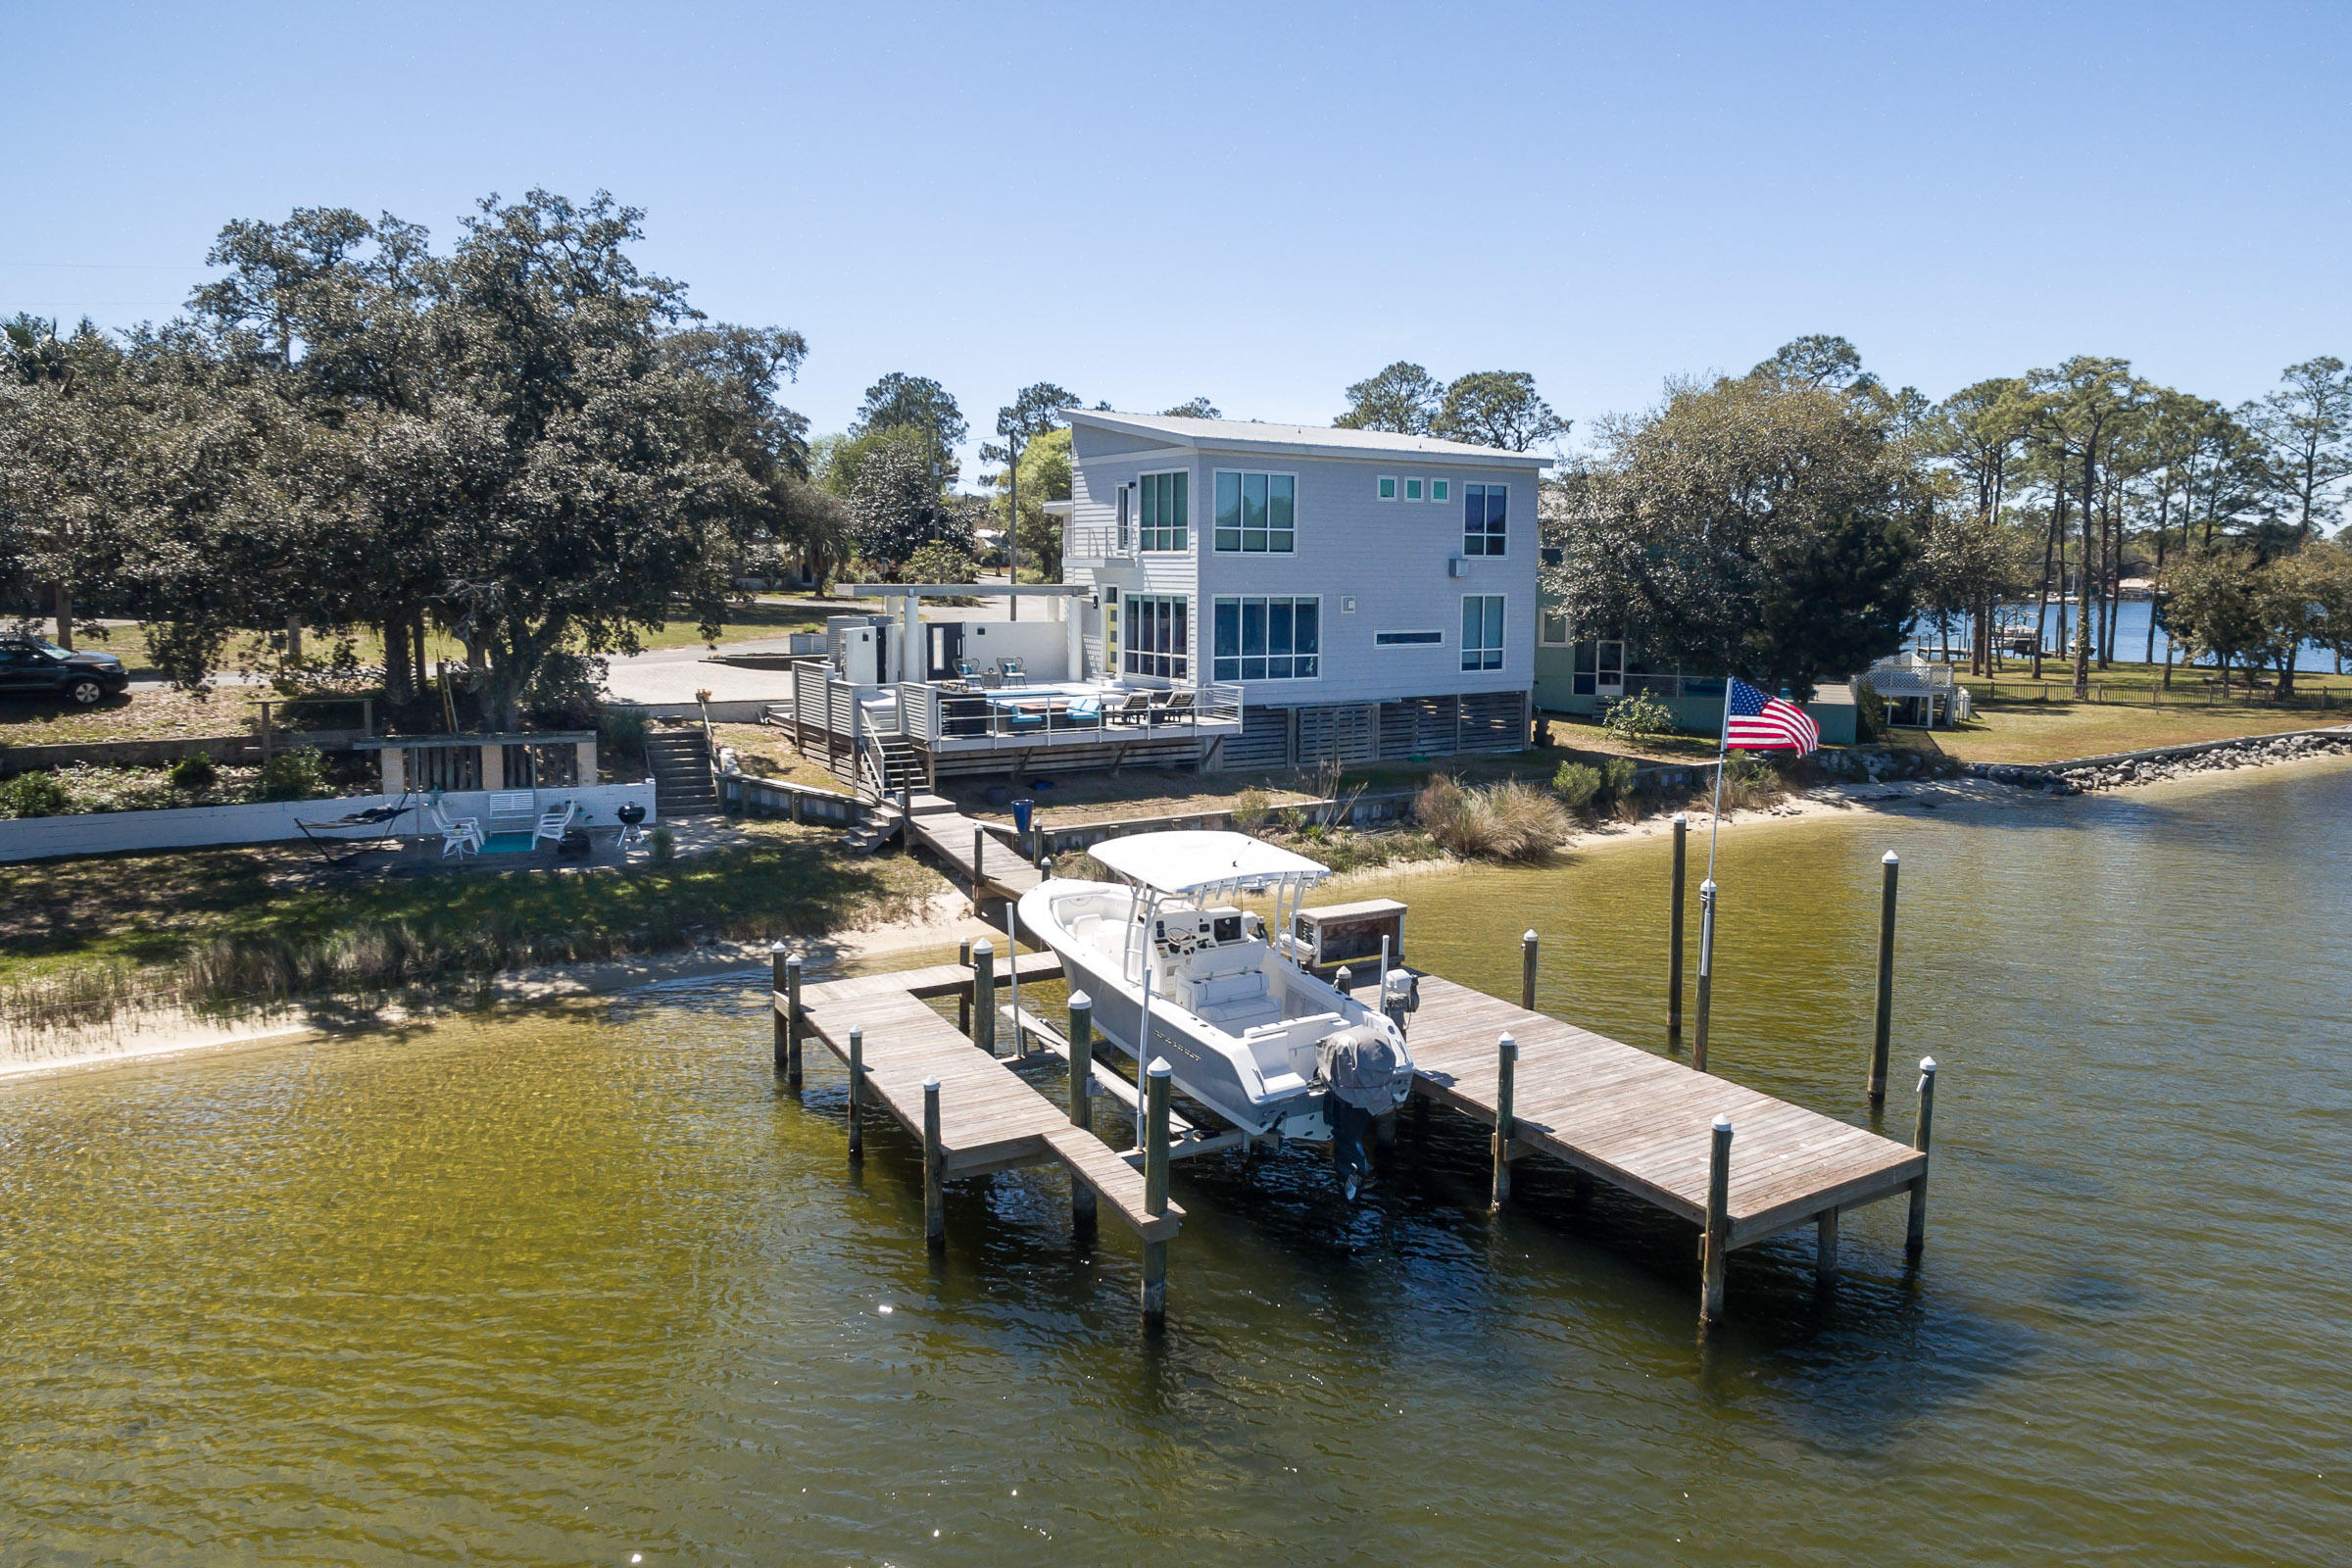 250 S Bayshore Drive, Valparaiso, Florida 3 Bedroom as one of Homes & Land Real Estate